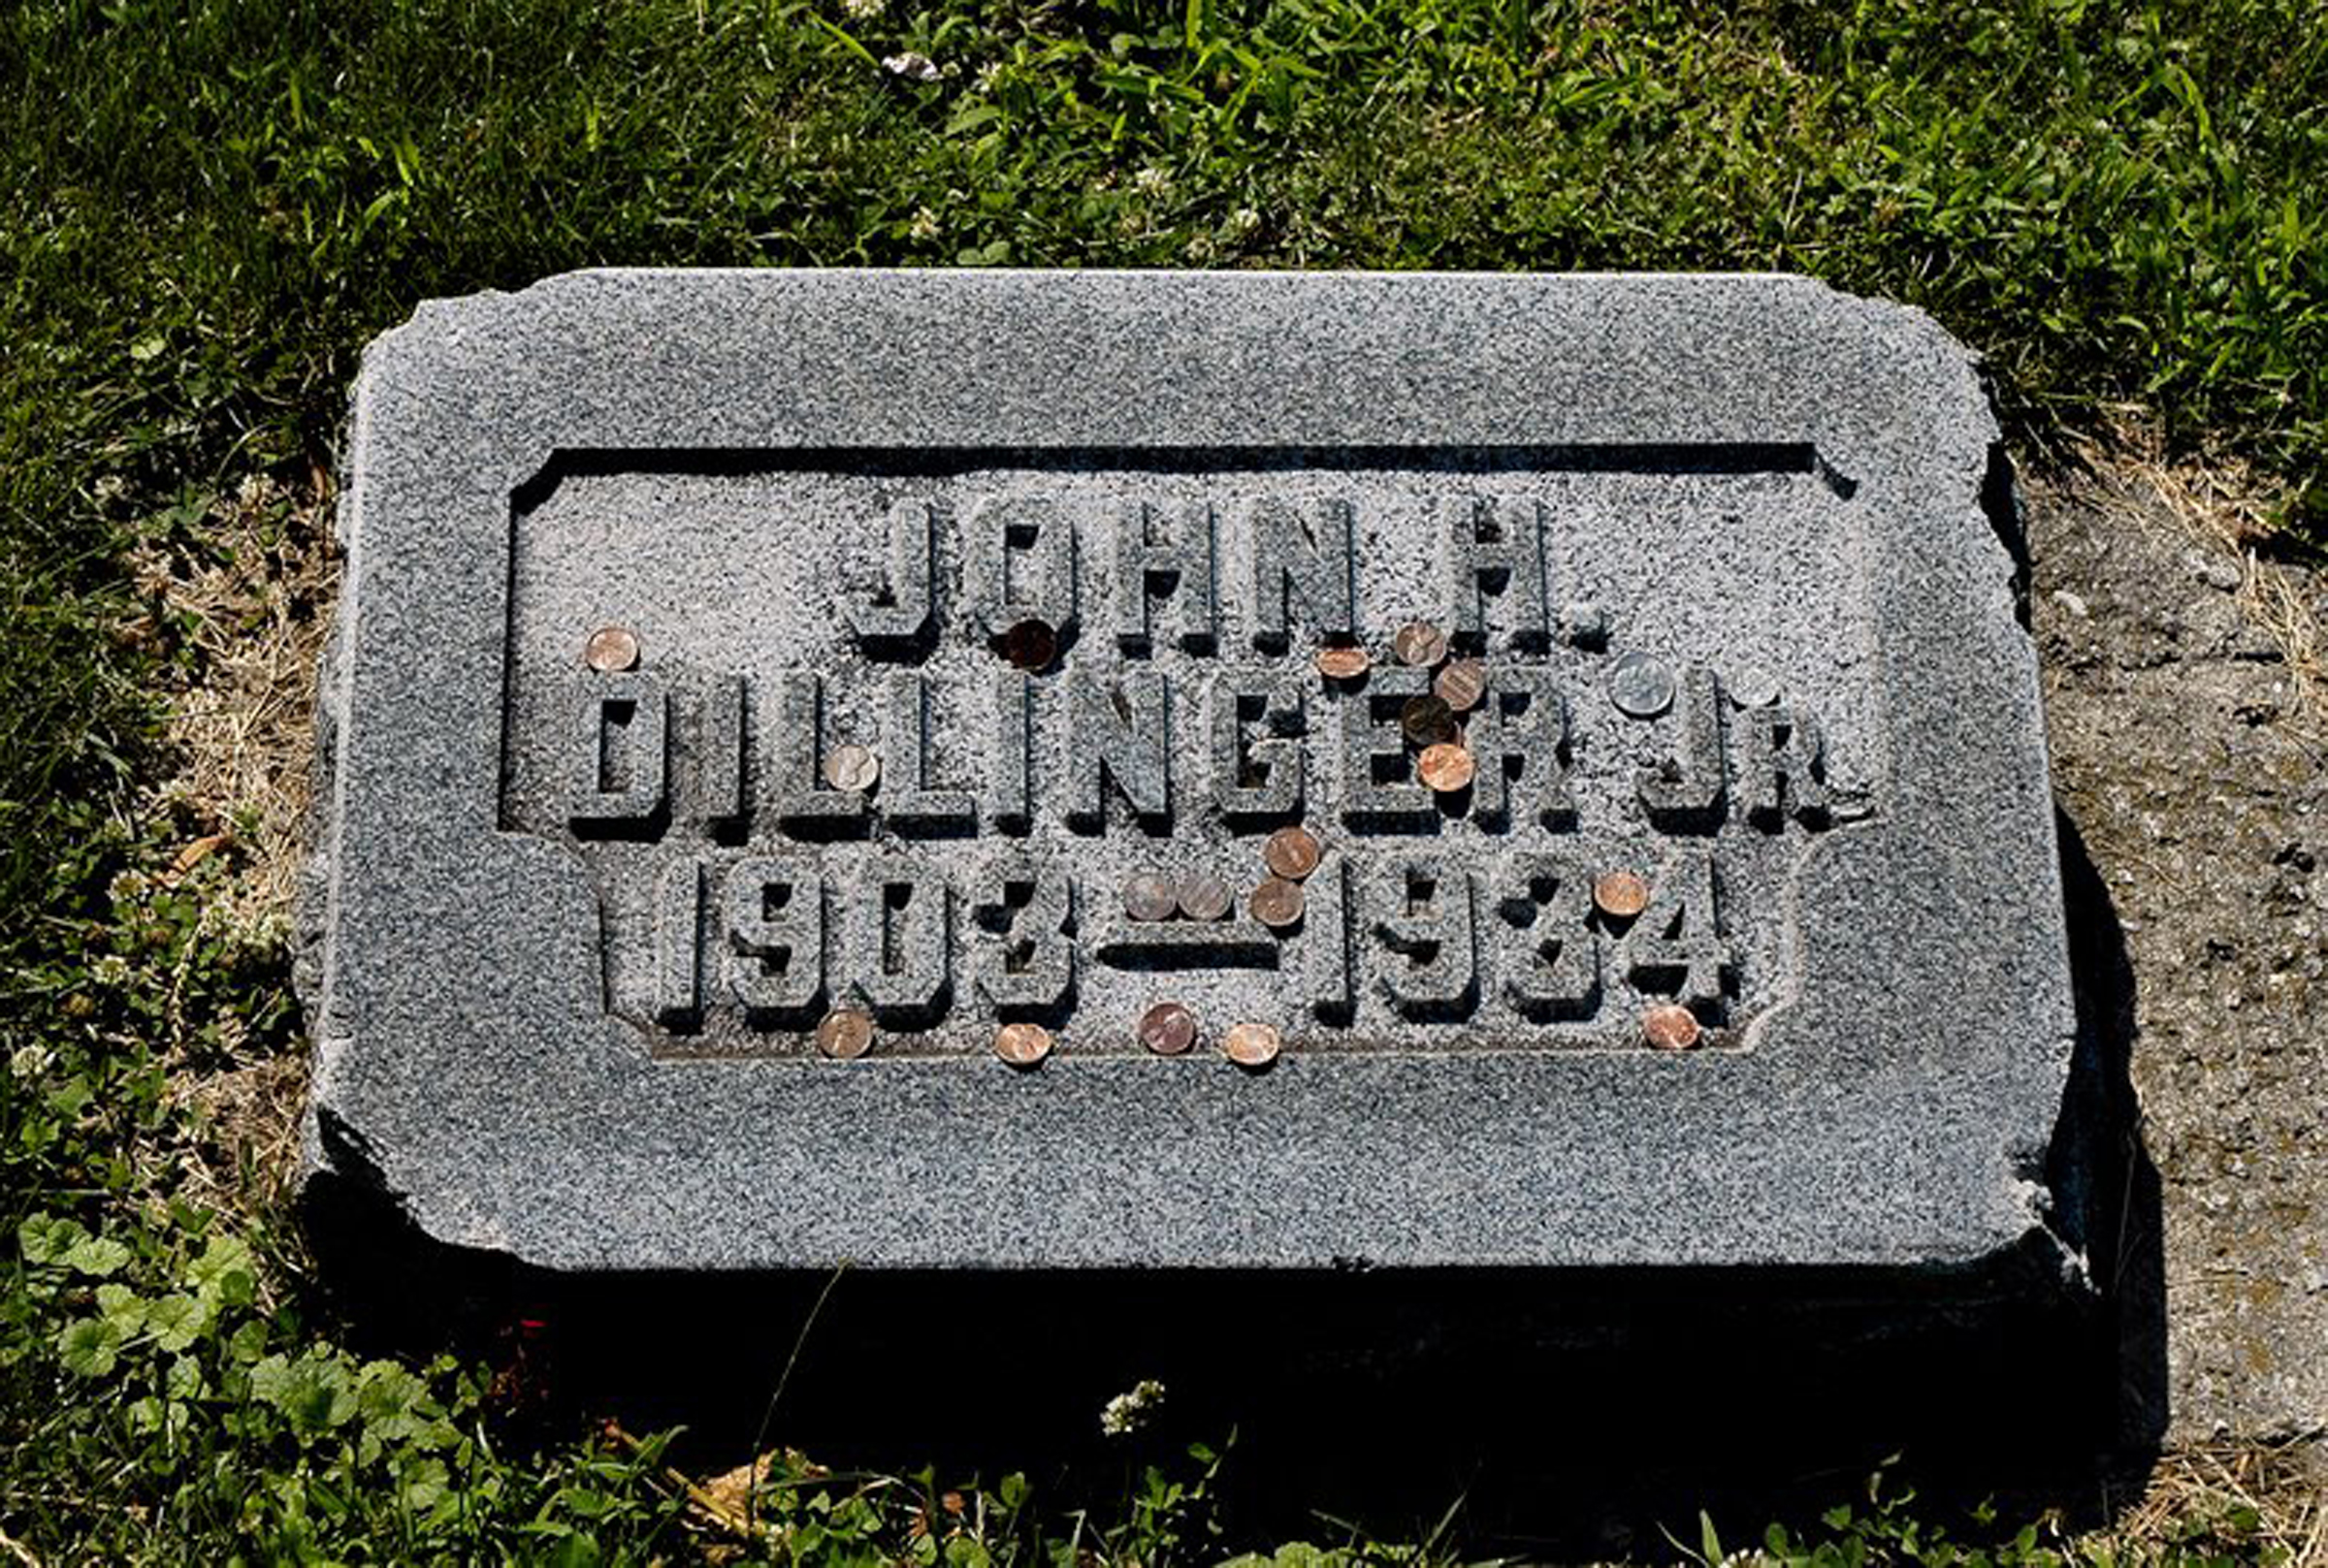 John Dillinger's gravestone at Crown Hill Cemetery in Indianapolis.